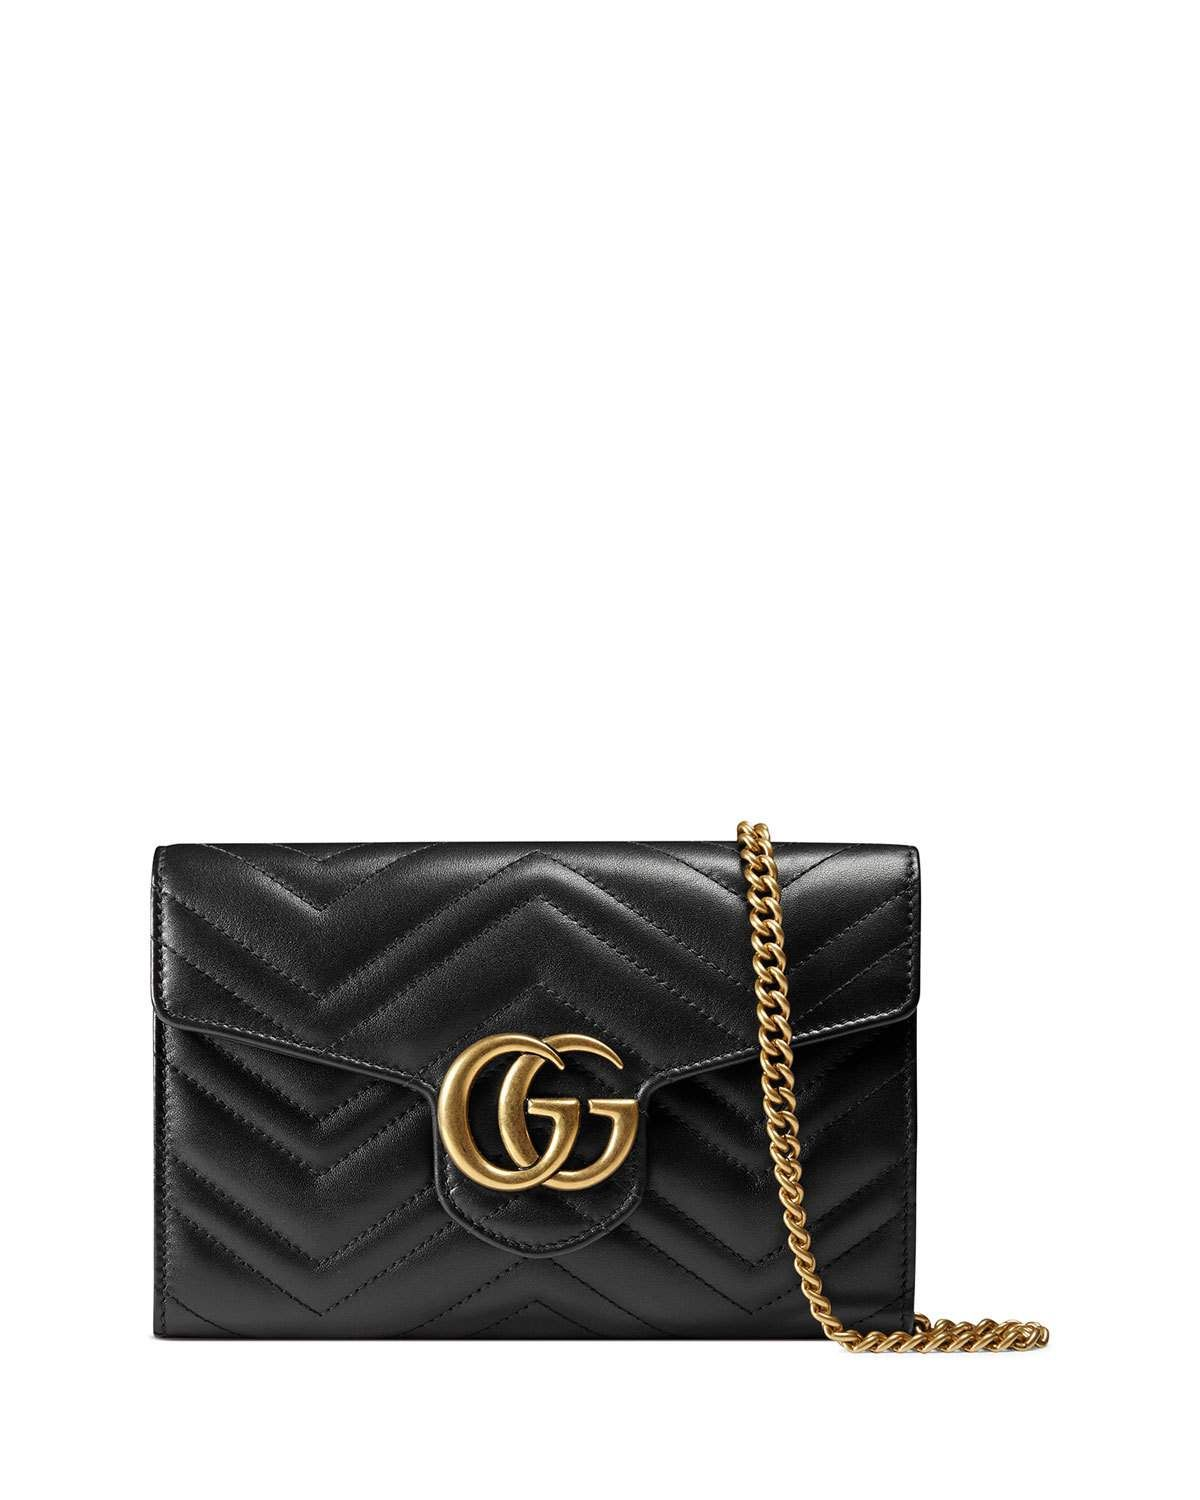 5f80723839f616 Gucci GG Marmont Matelassé Mini Bag, Black | lust list // | Bags ...